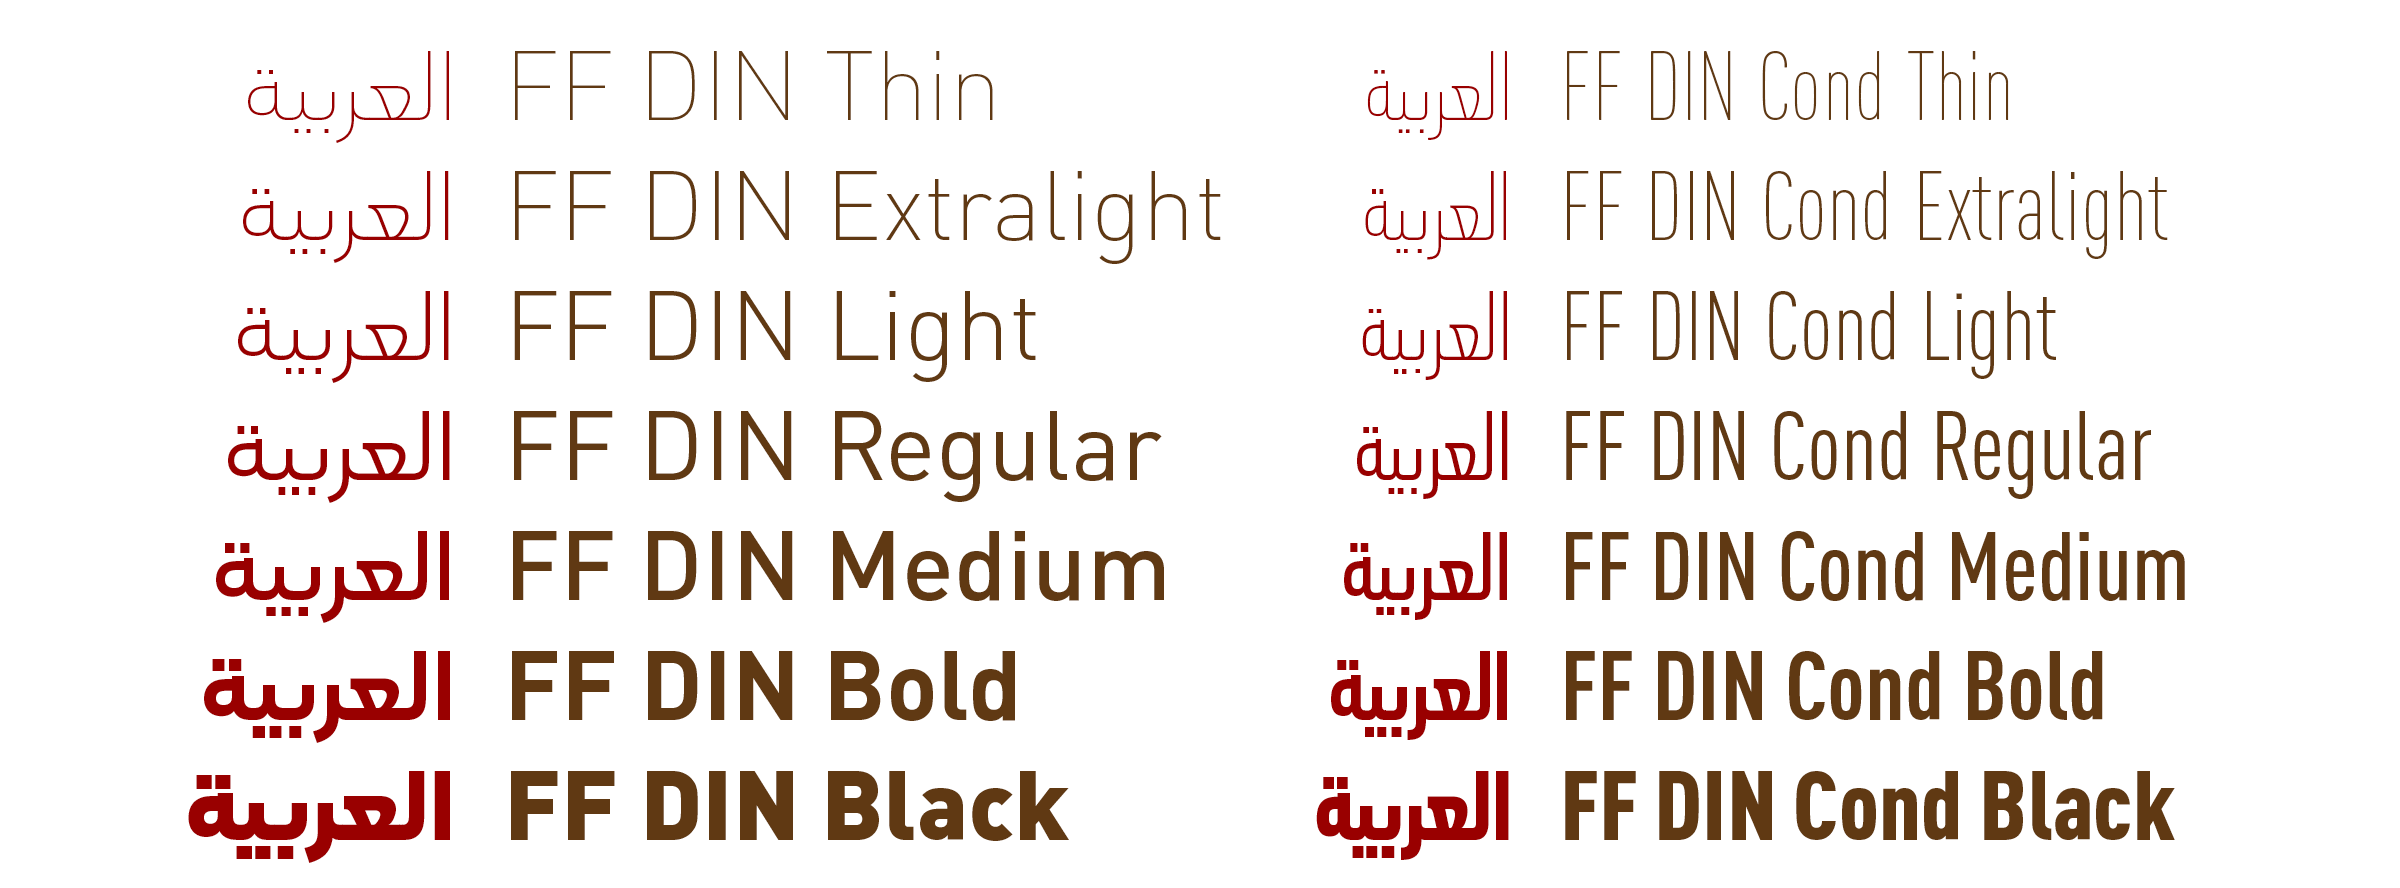 All the upright weights of FF DIN have been expanded to support the Arabic script.